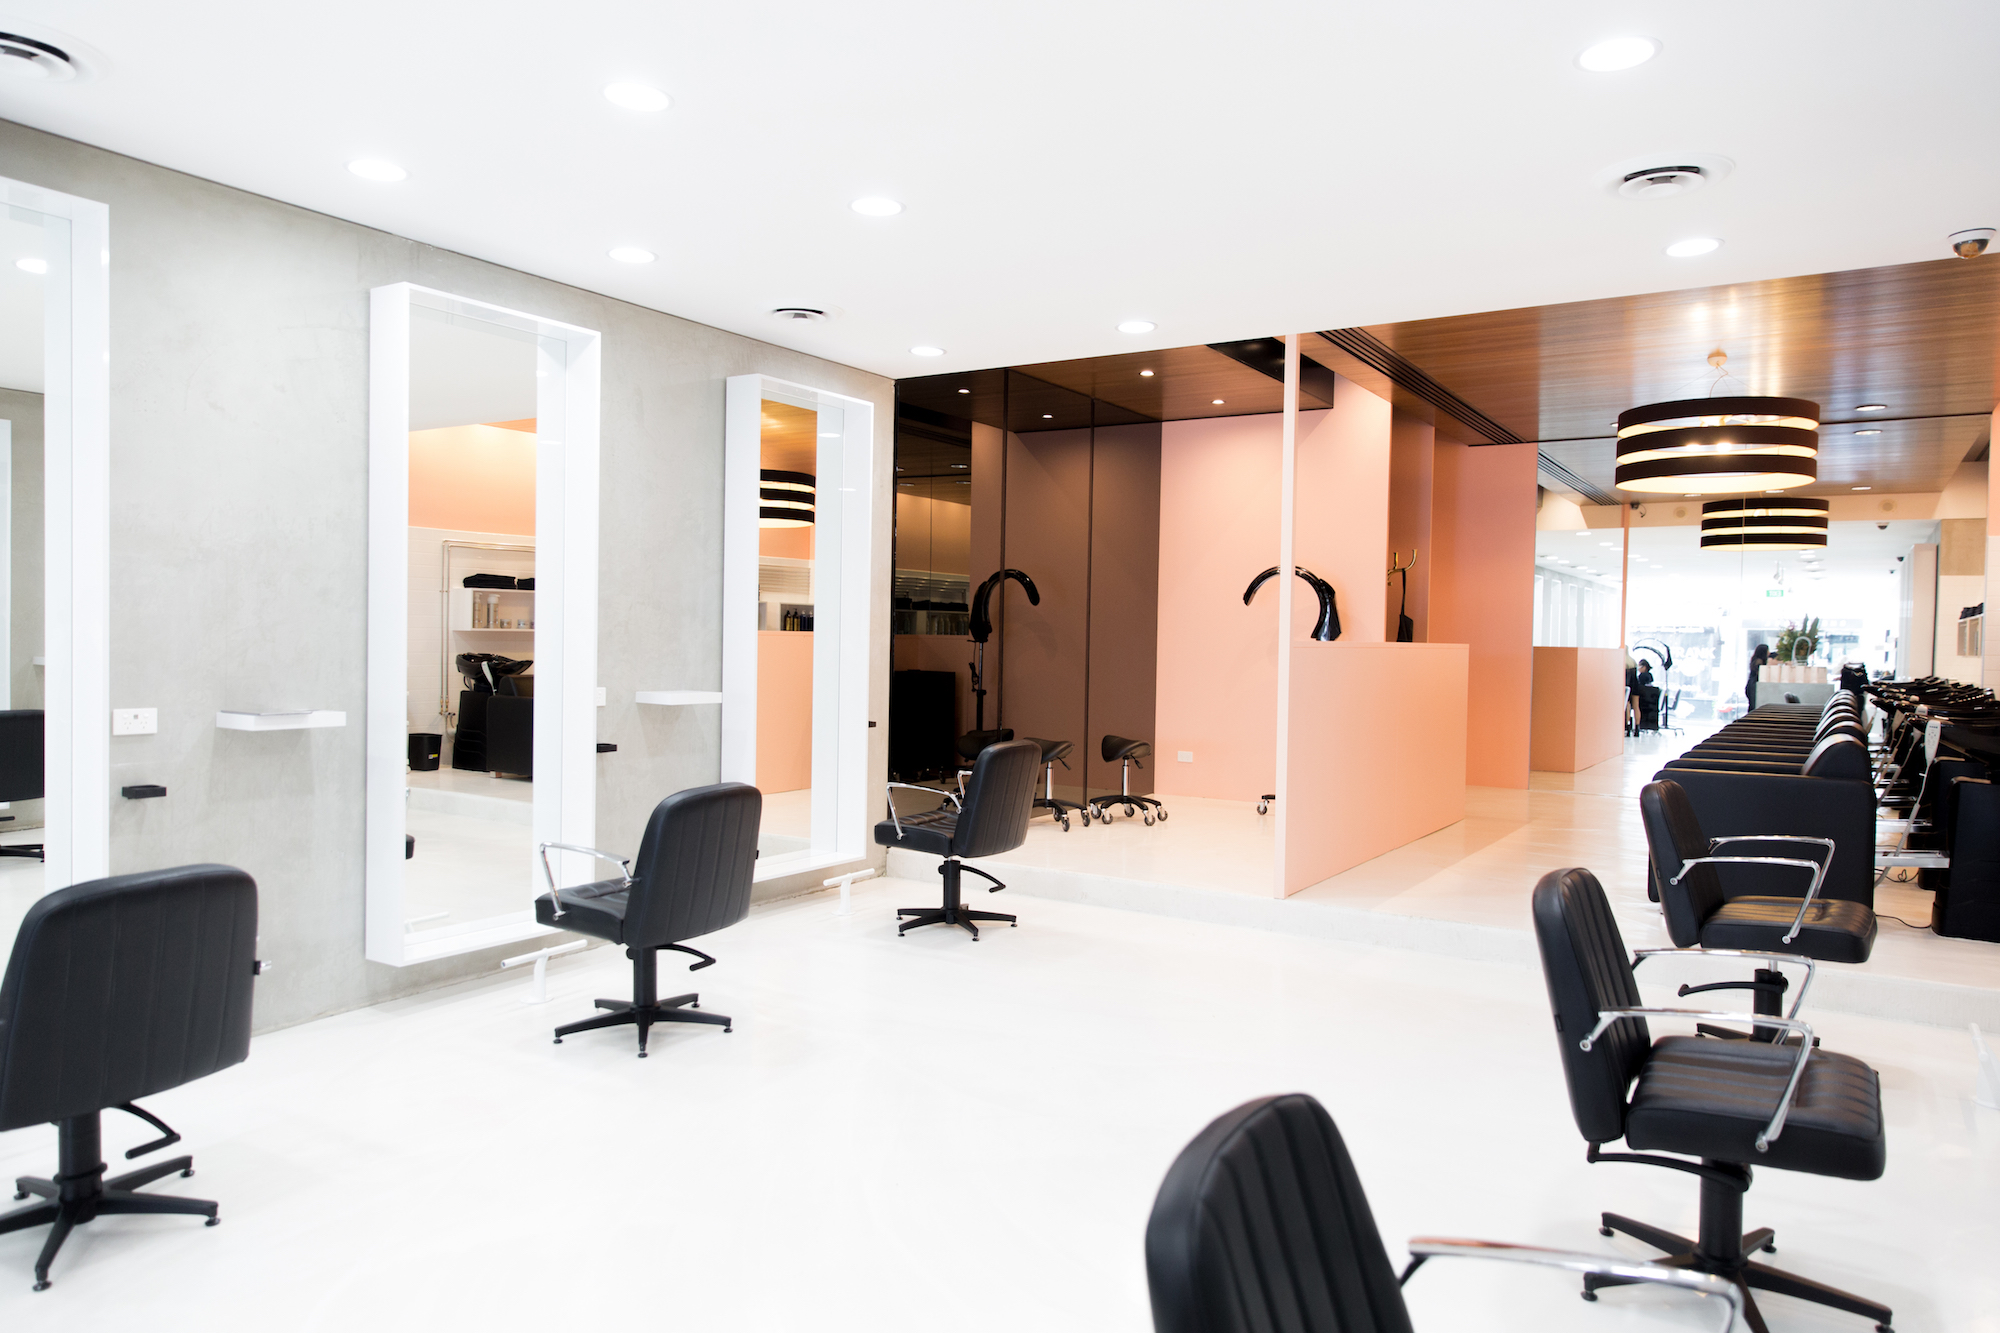 by-frank-south-yarra by-frank hair-by-frank frank-apostolopoulos melbourne-new-hair-salon new-hair-salon